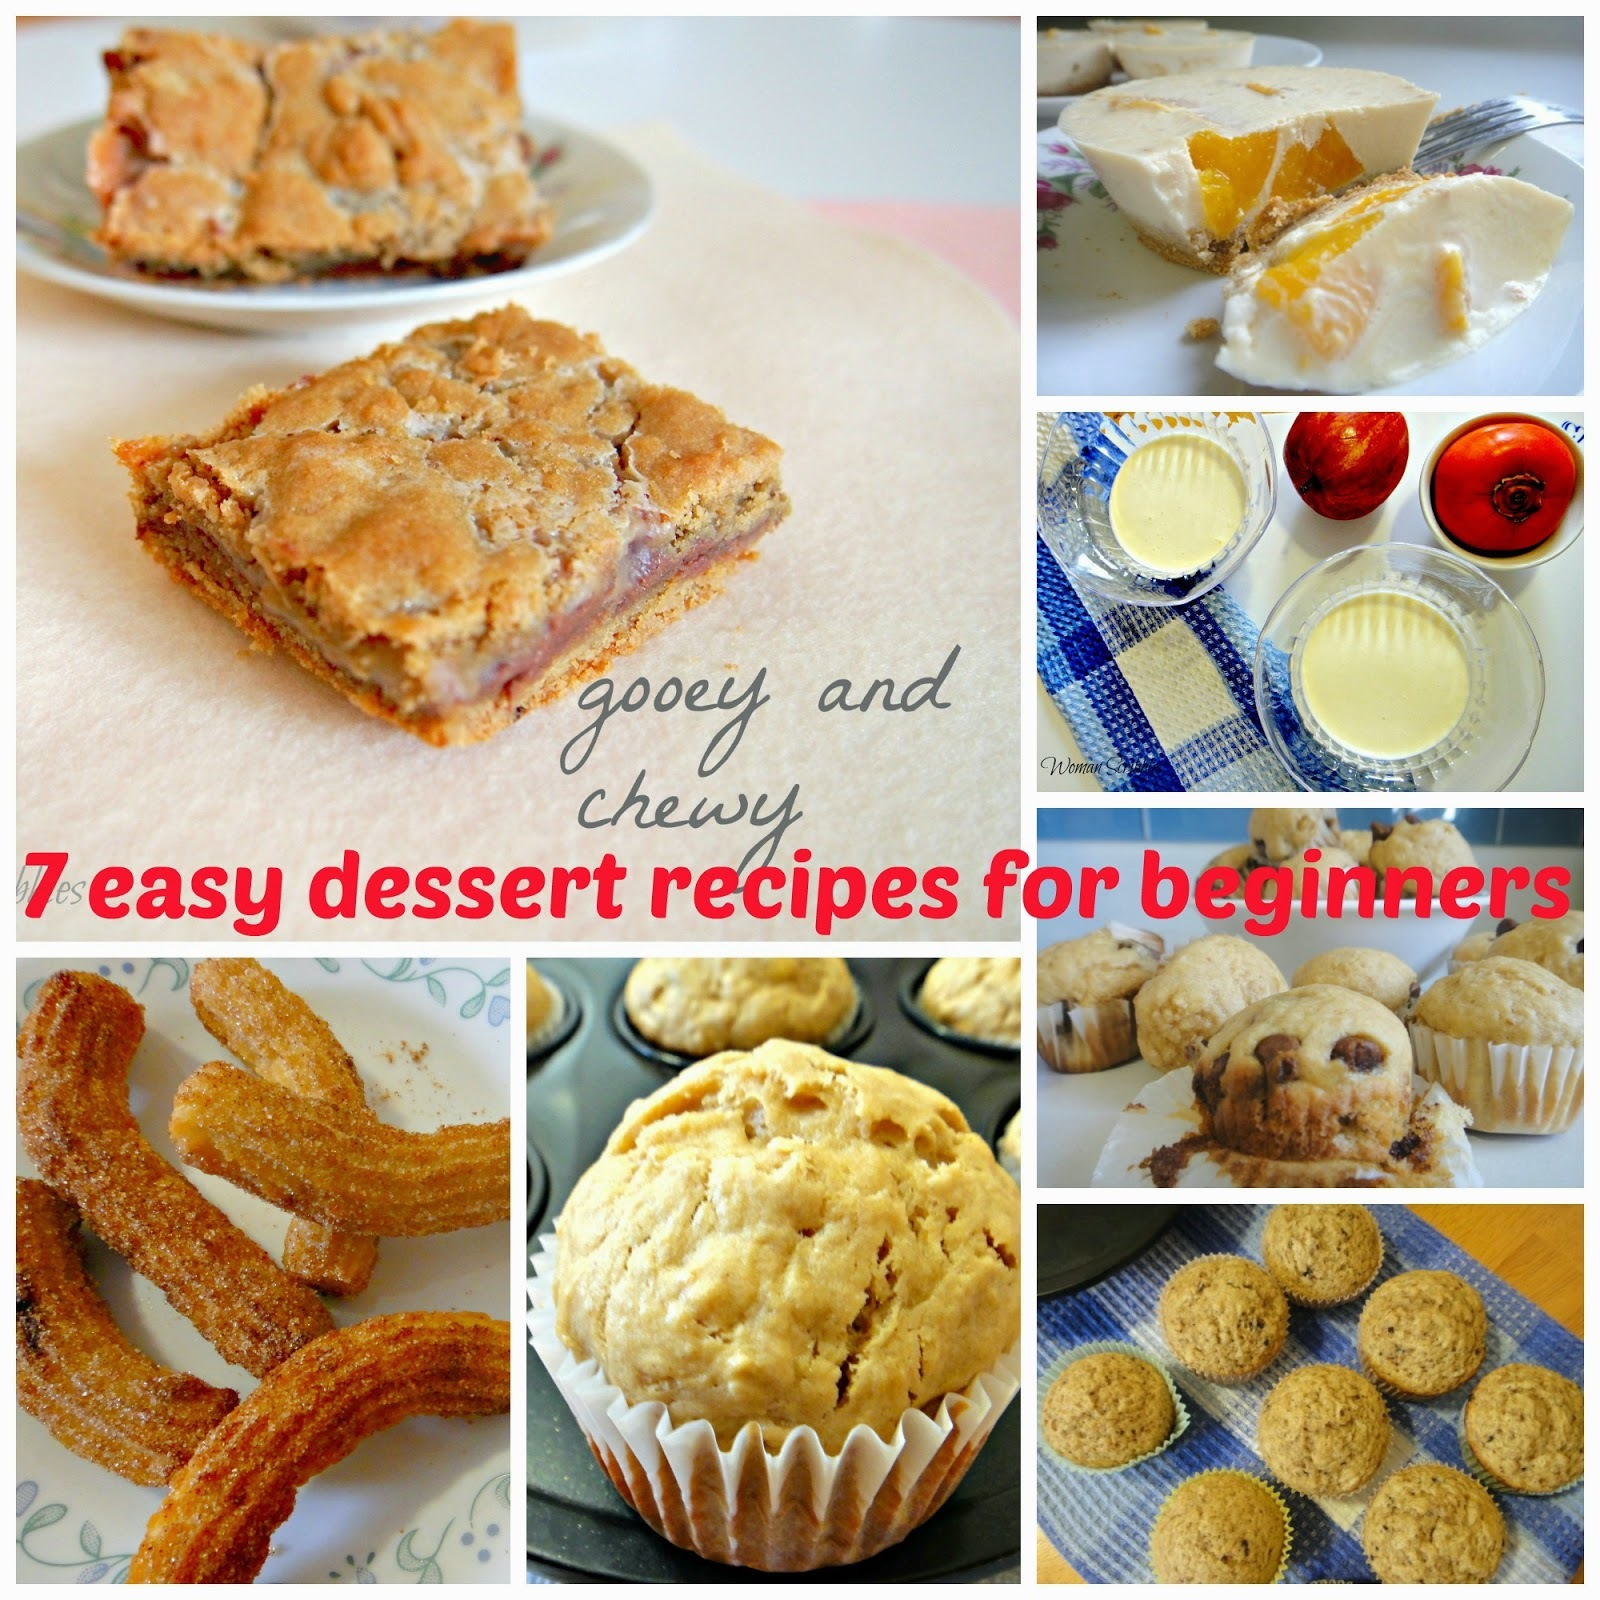 7 Easy Dessert Recipes For Beginners